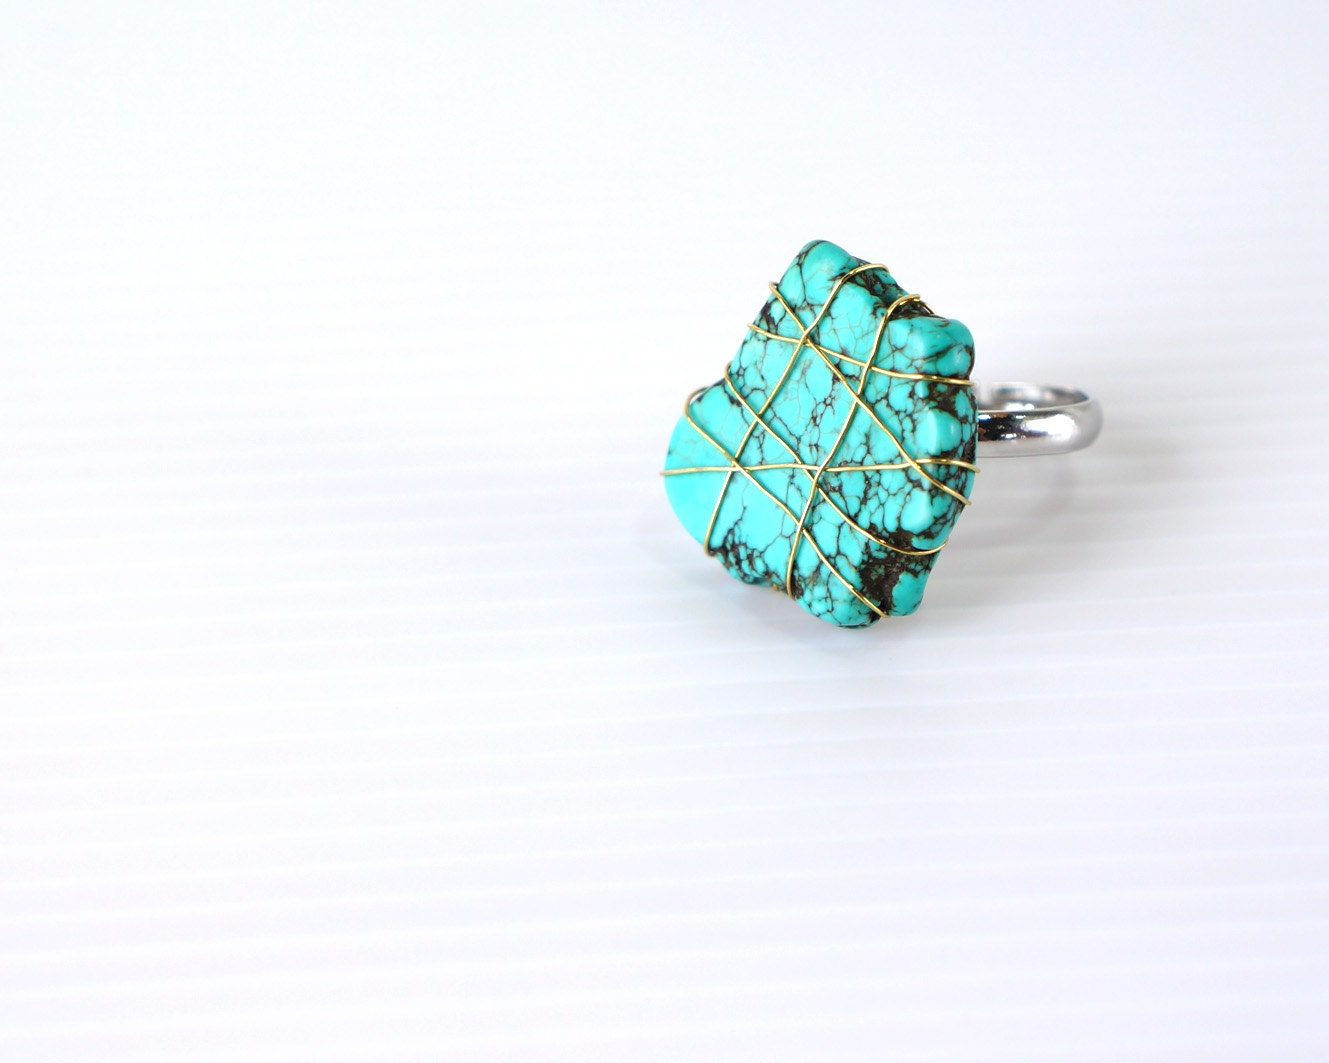 Turquoise Stone Ring, Wire Wrapped Flat Stone Adjustable Ring, Golden Wire Natural Stone Ring, One Of A Kind Stone Ring